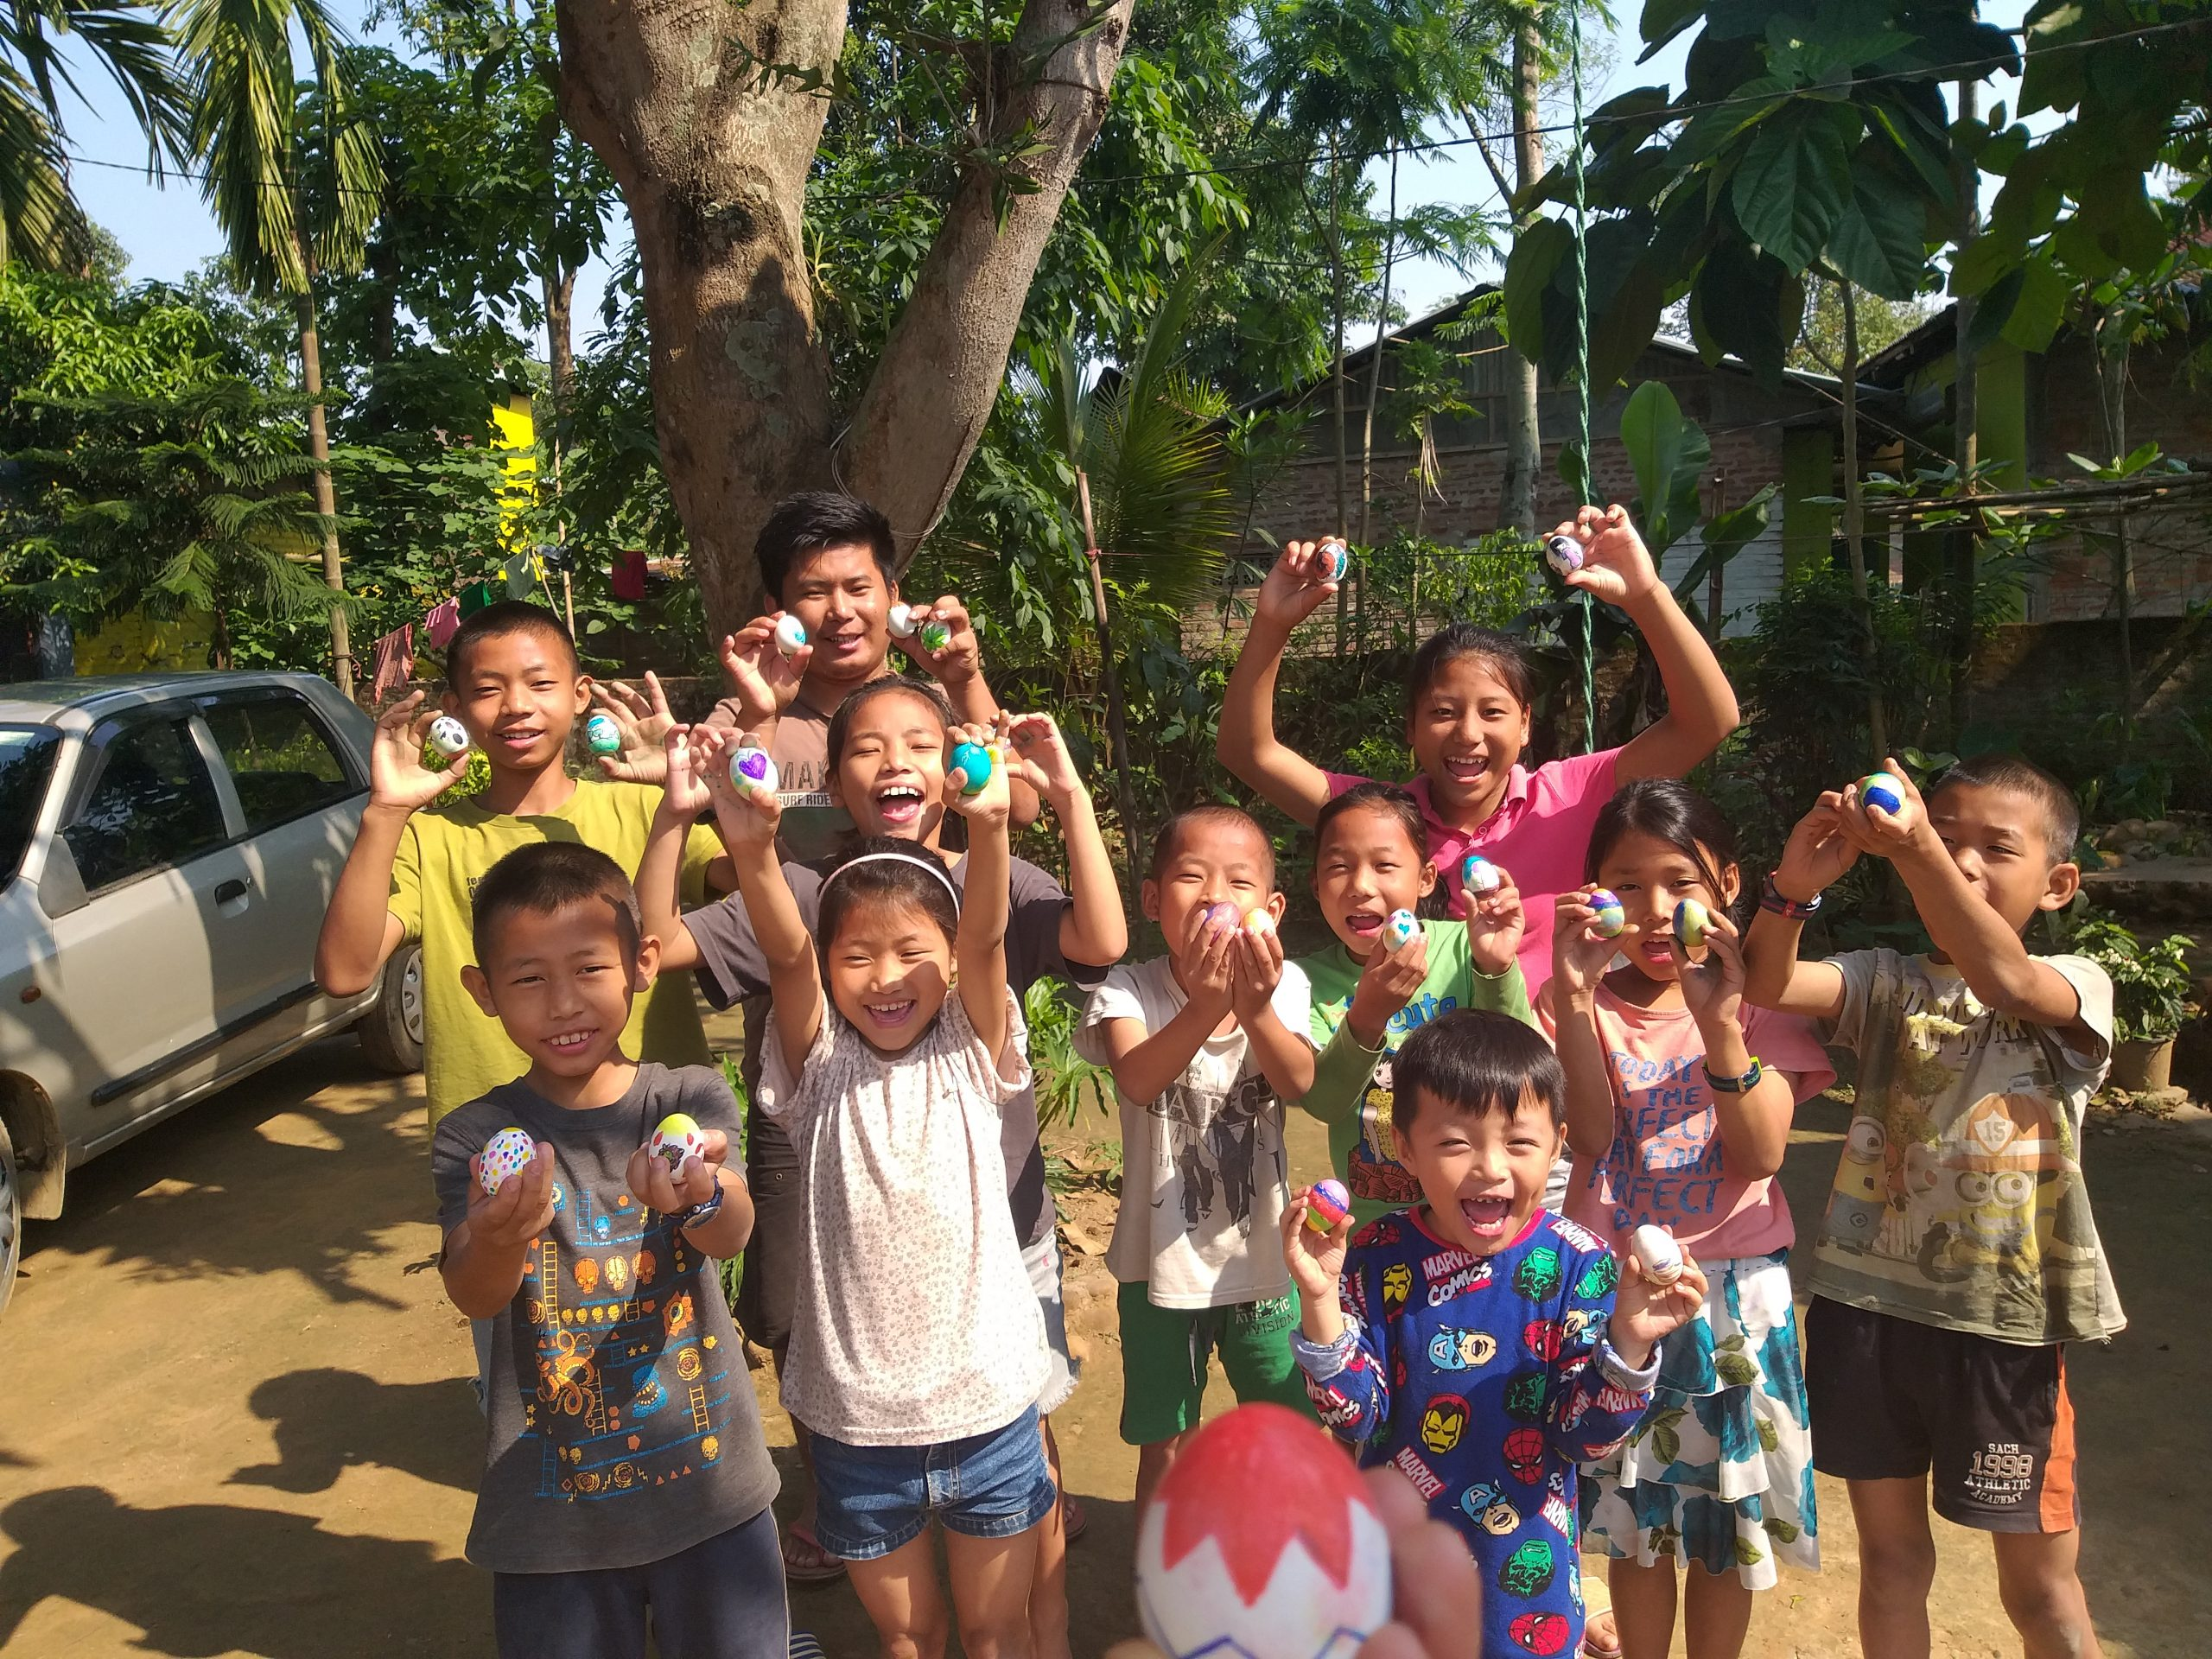 Eliezer home in Dimapur, a remote area of Nagaland has become a safe haven for children with toxic-troubled childhood.